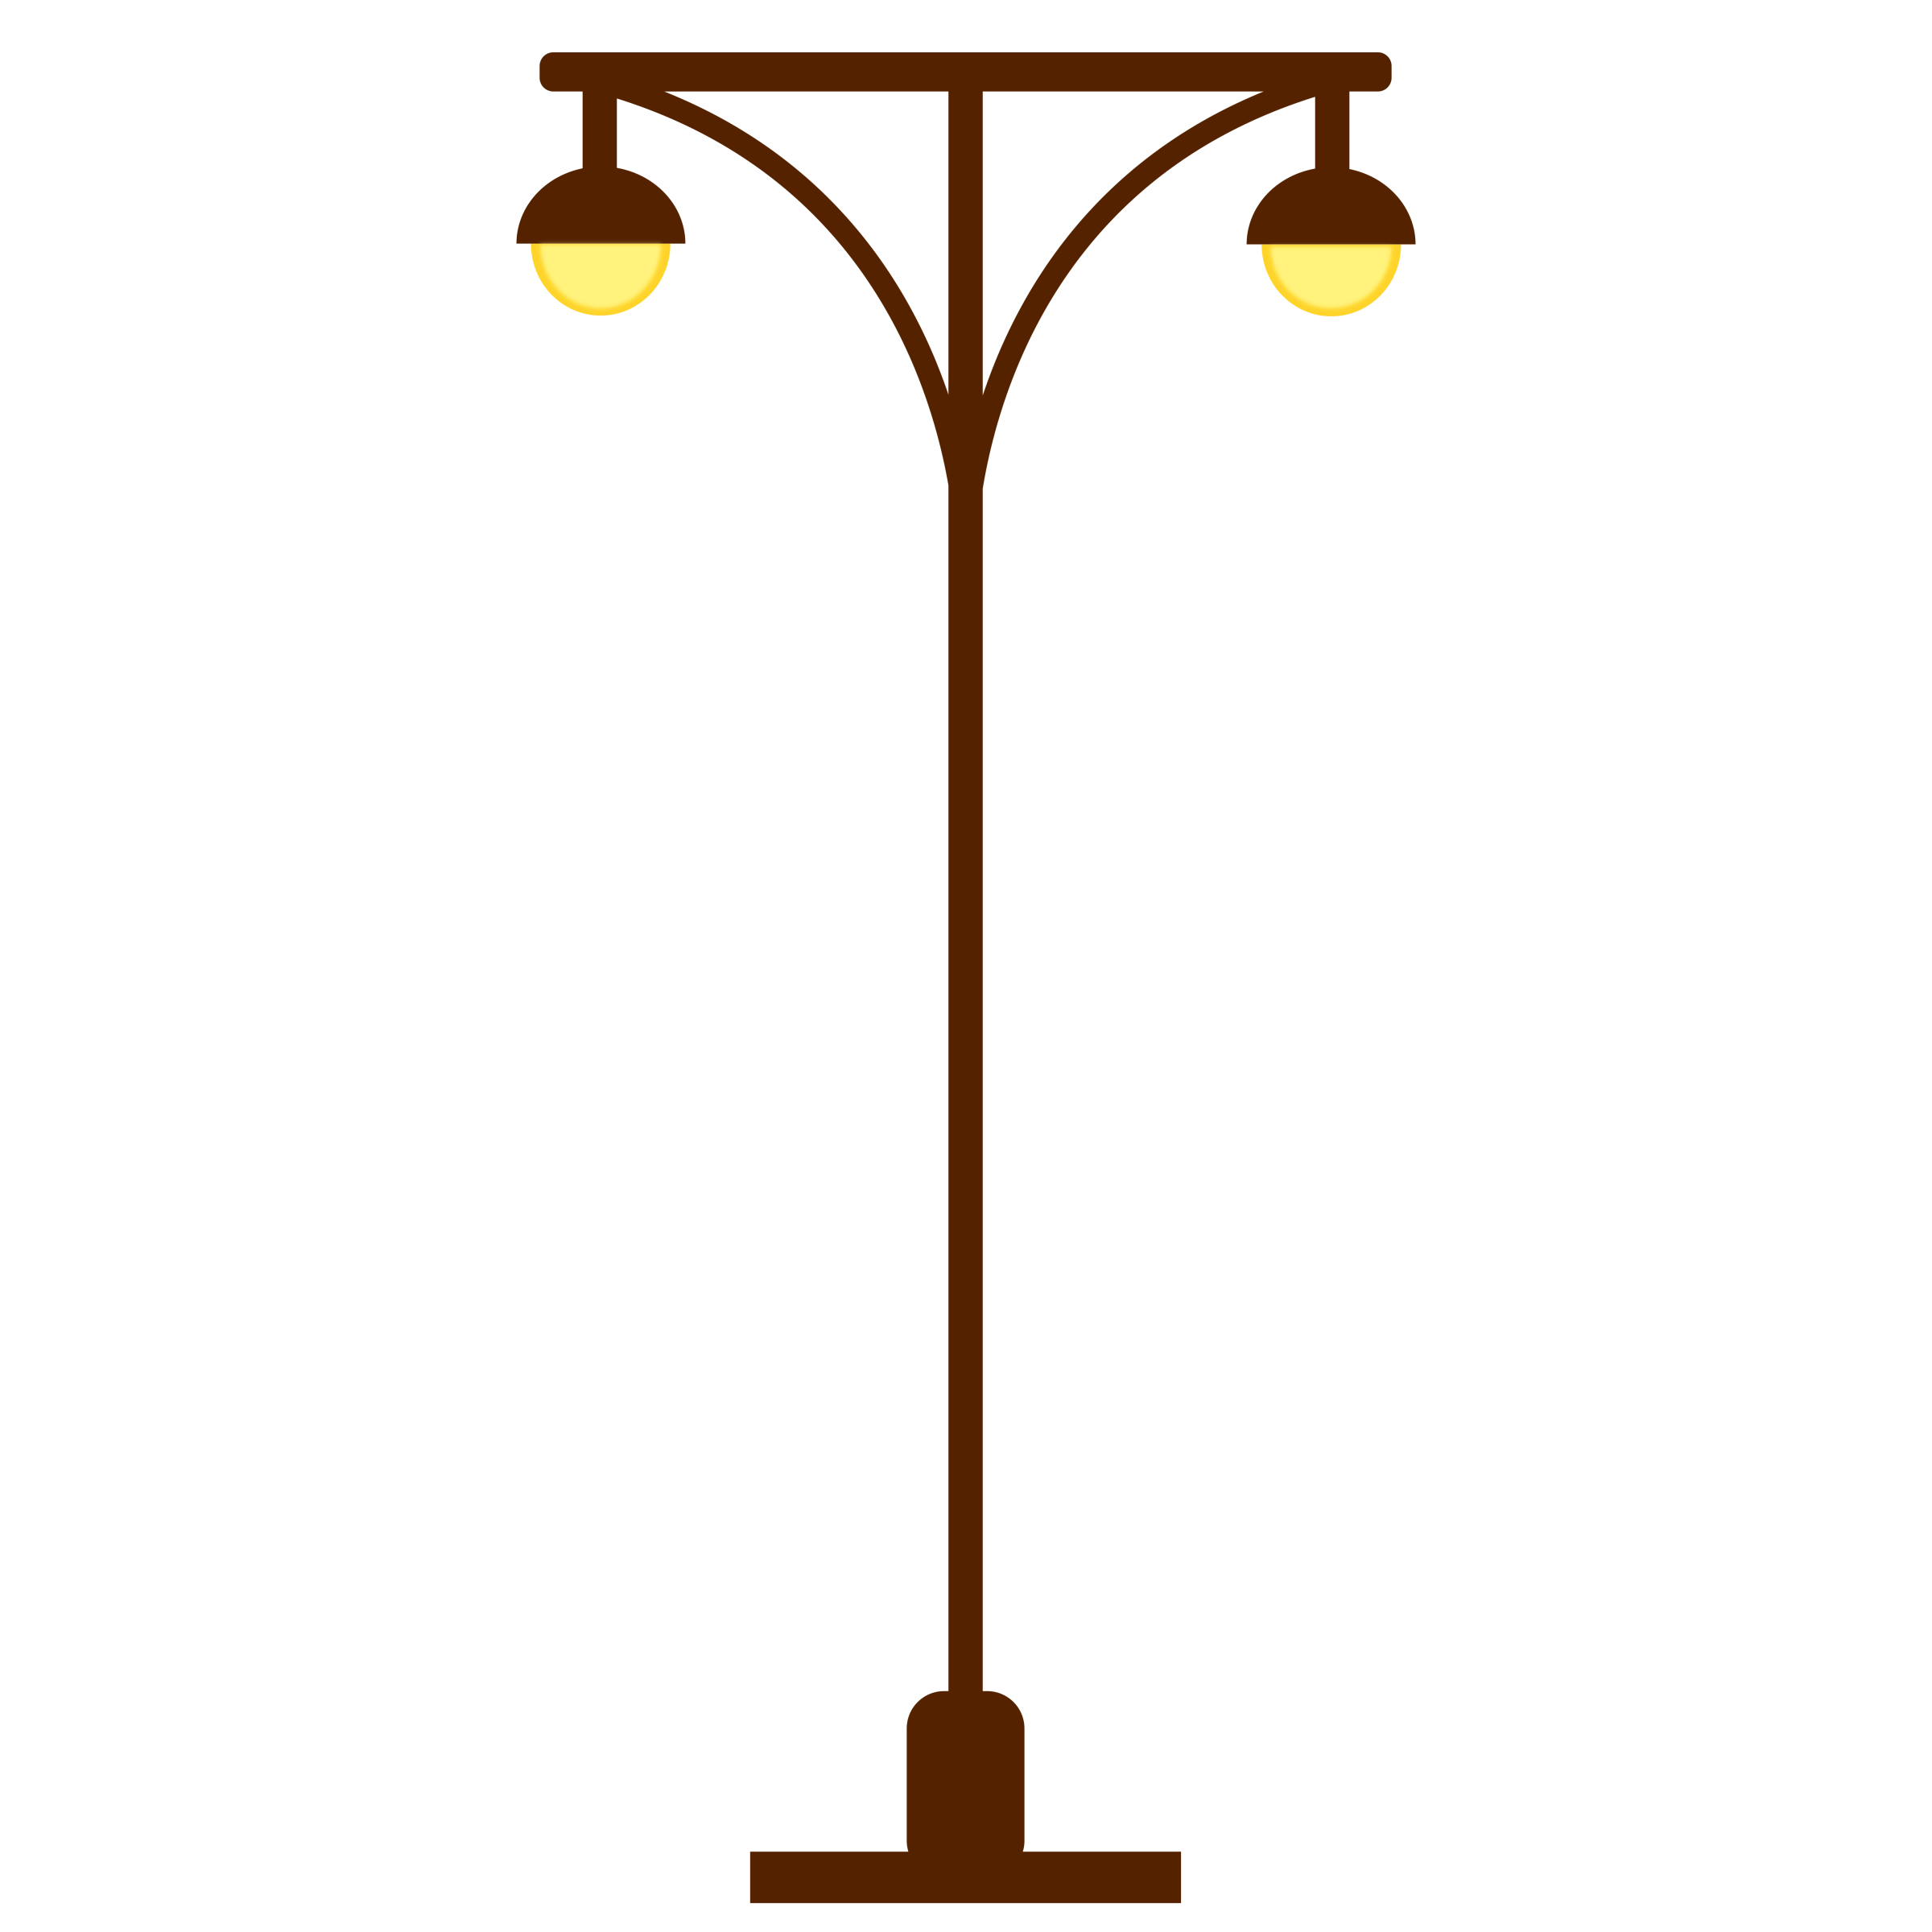 Lamp Pole Clipart 20 Free Cliparts Download Images On